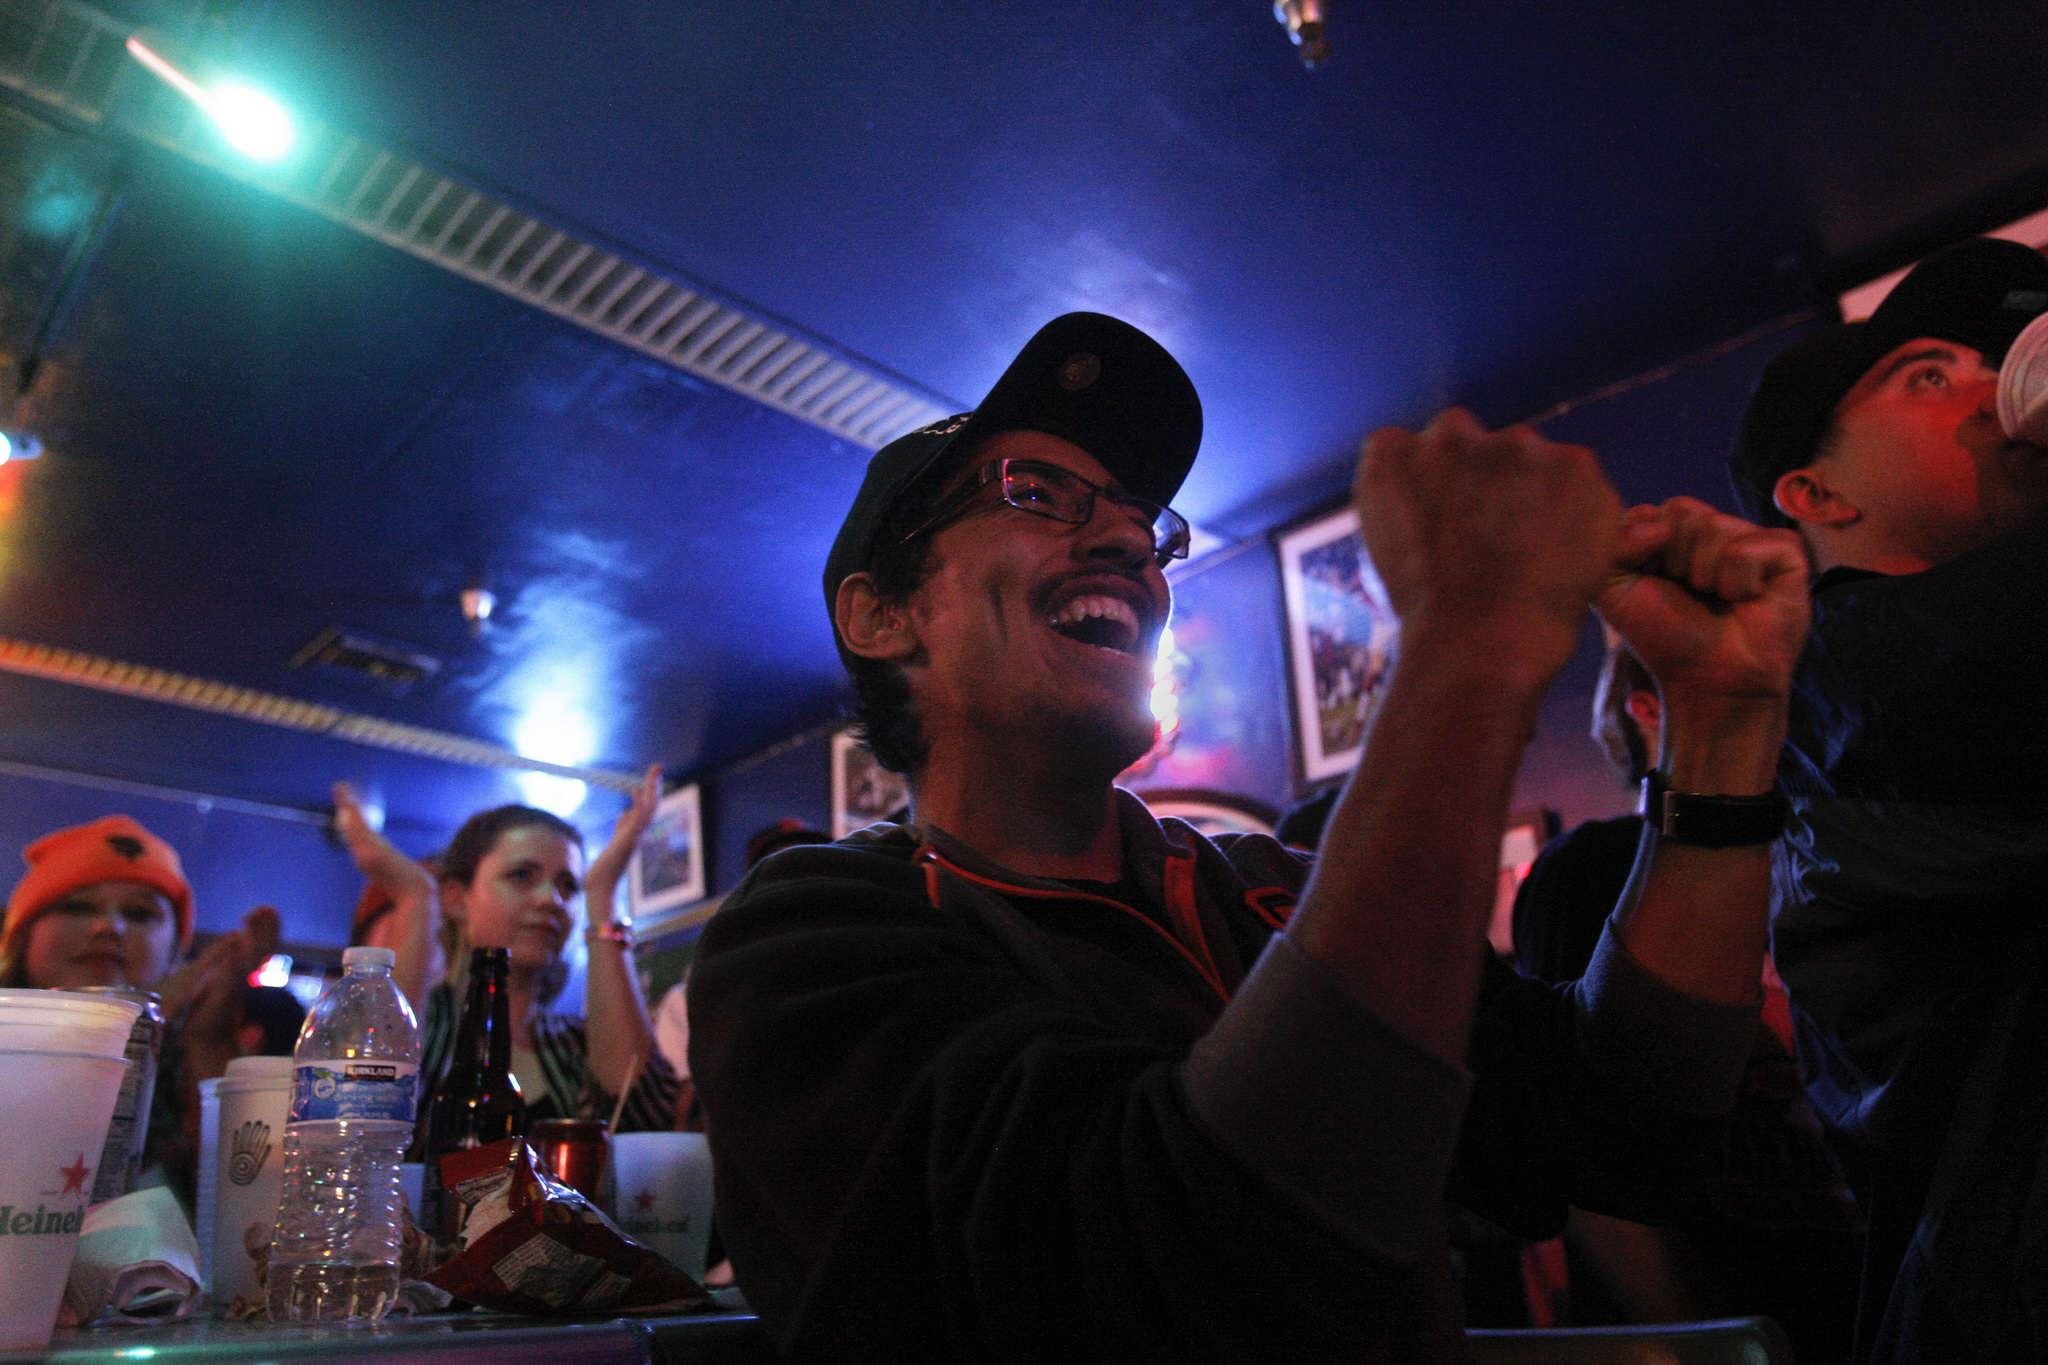 Campus pub floods with cheers as Giants win World Series Game 1